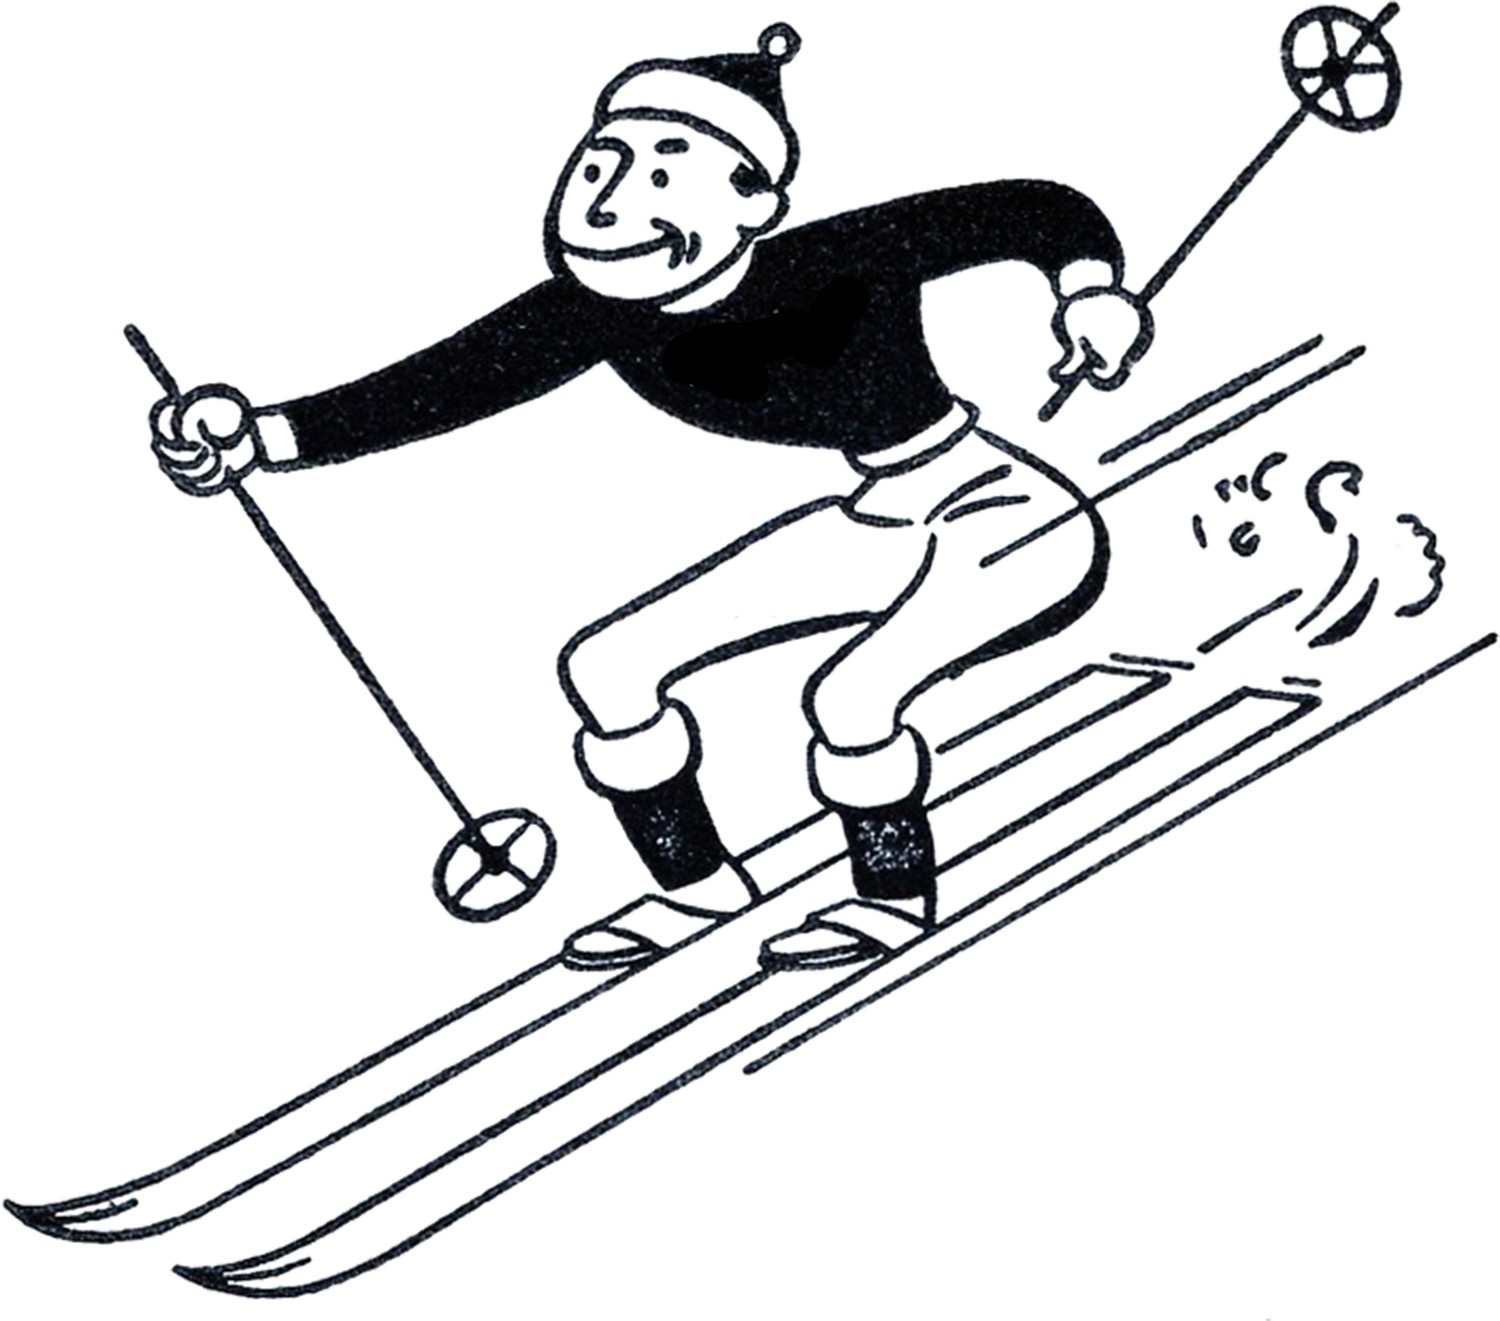 For Clipart Skiing Cartoon BigKAAb4T.